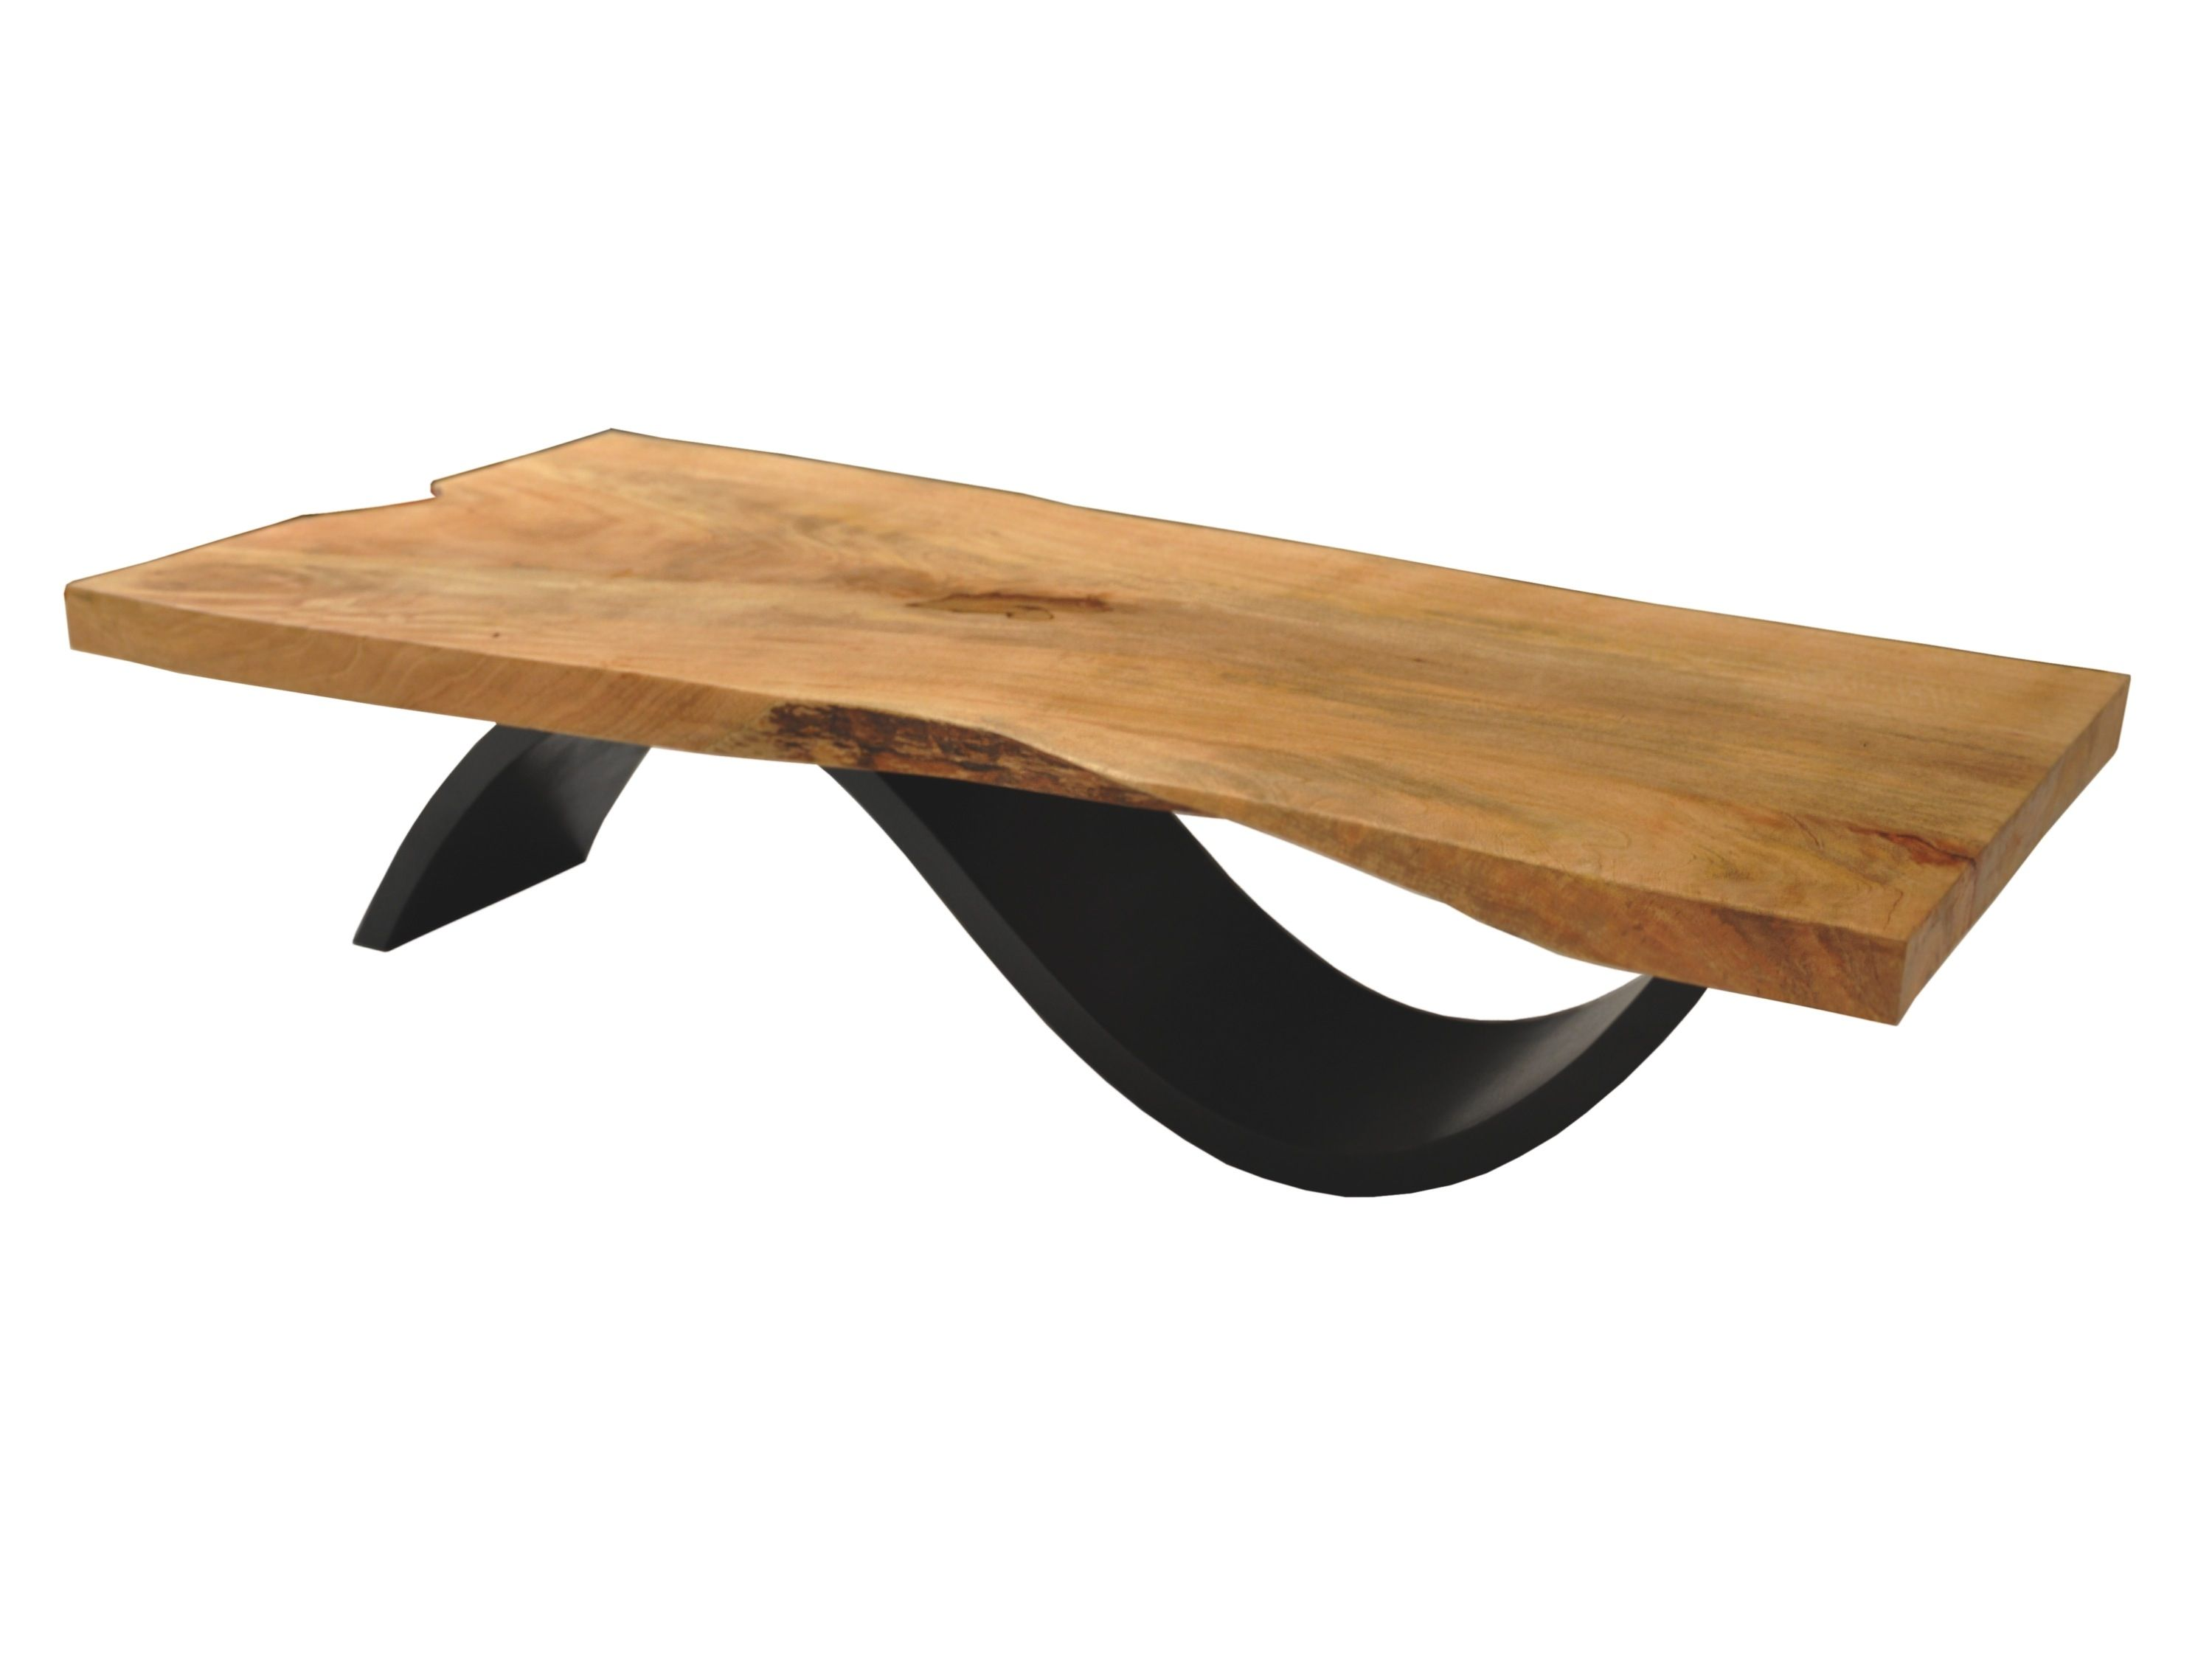 Brasilia Coffee Table   Solid Wood Top U0026 Veneered Base Brasilia   Mango Wood  Top From Rotsen Furniture